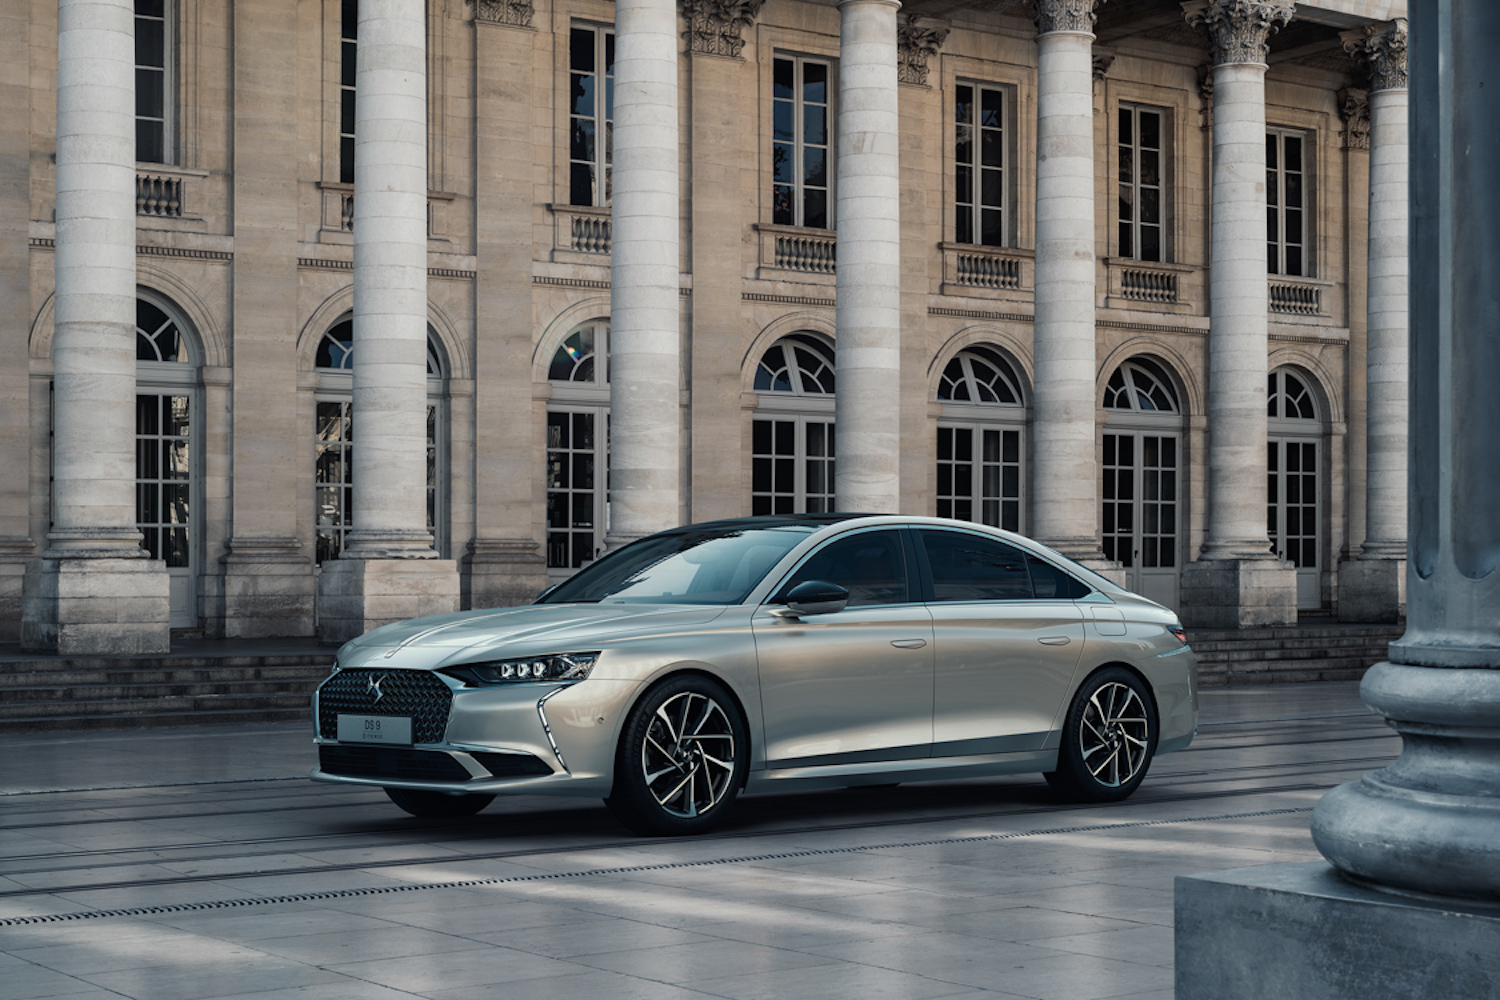 Car News | DS on cloud 9 with third all-new model | CompleteCar.ie